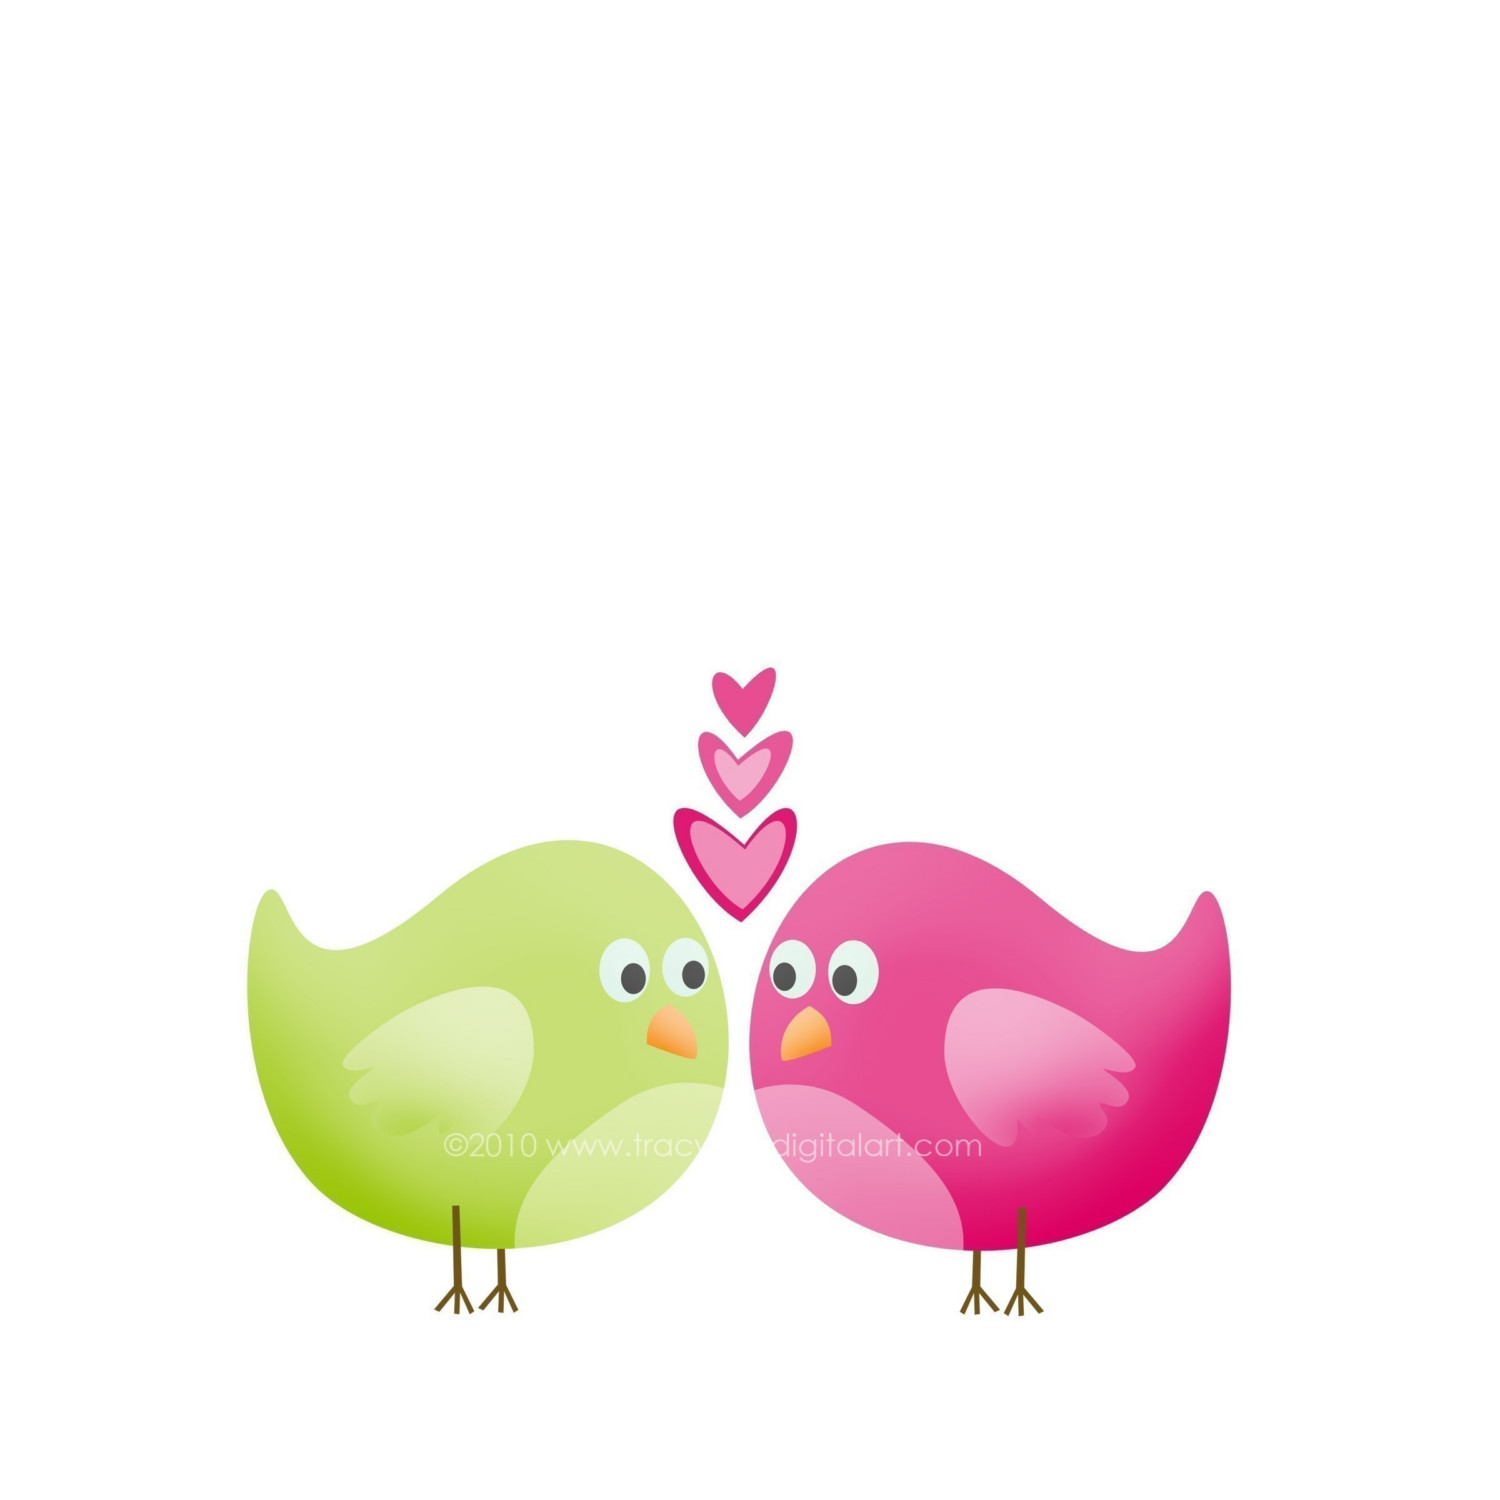 Love Birds Clipart Wedding.